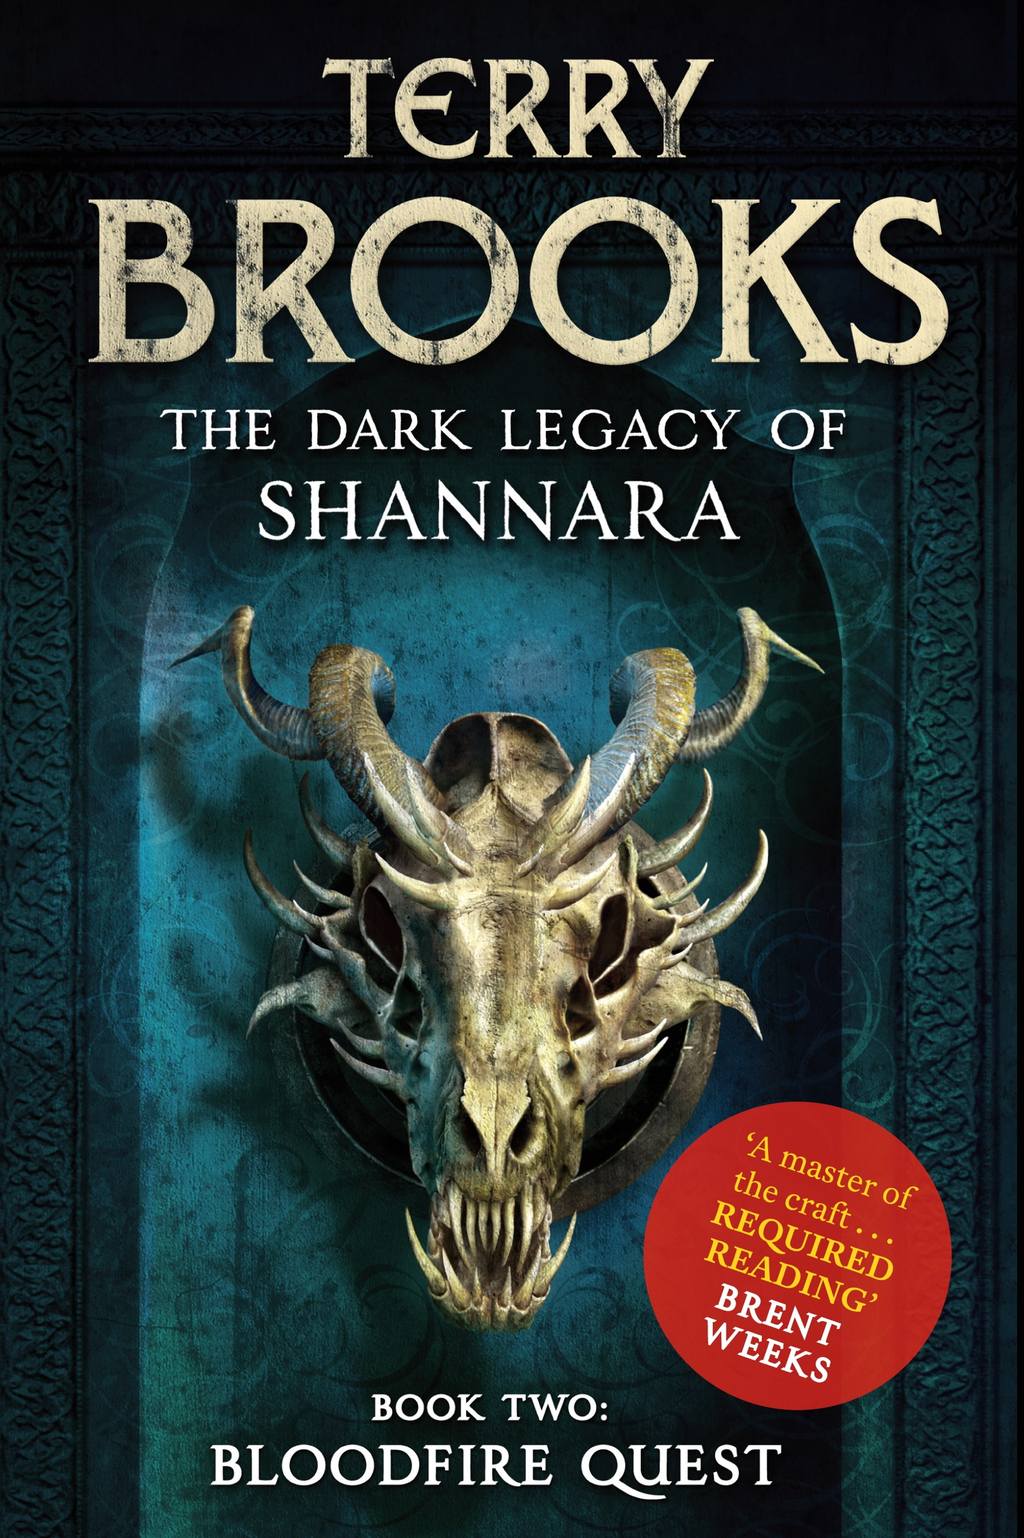 Bloodfire Quest Book 2 of The Dark Legacy of Shannara